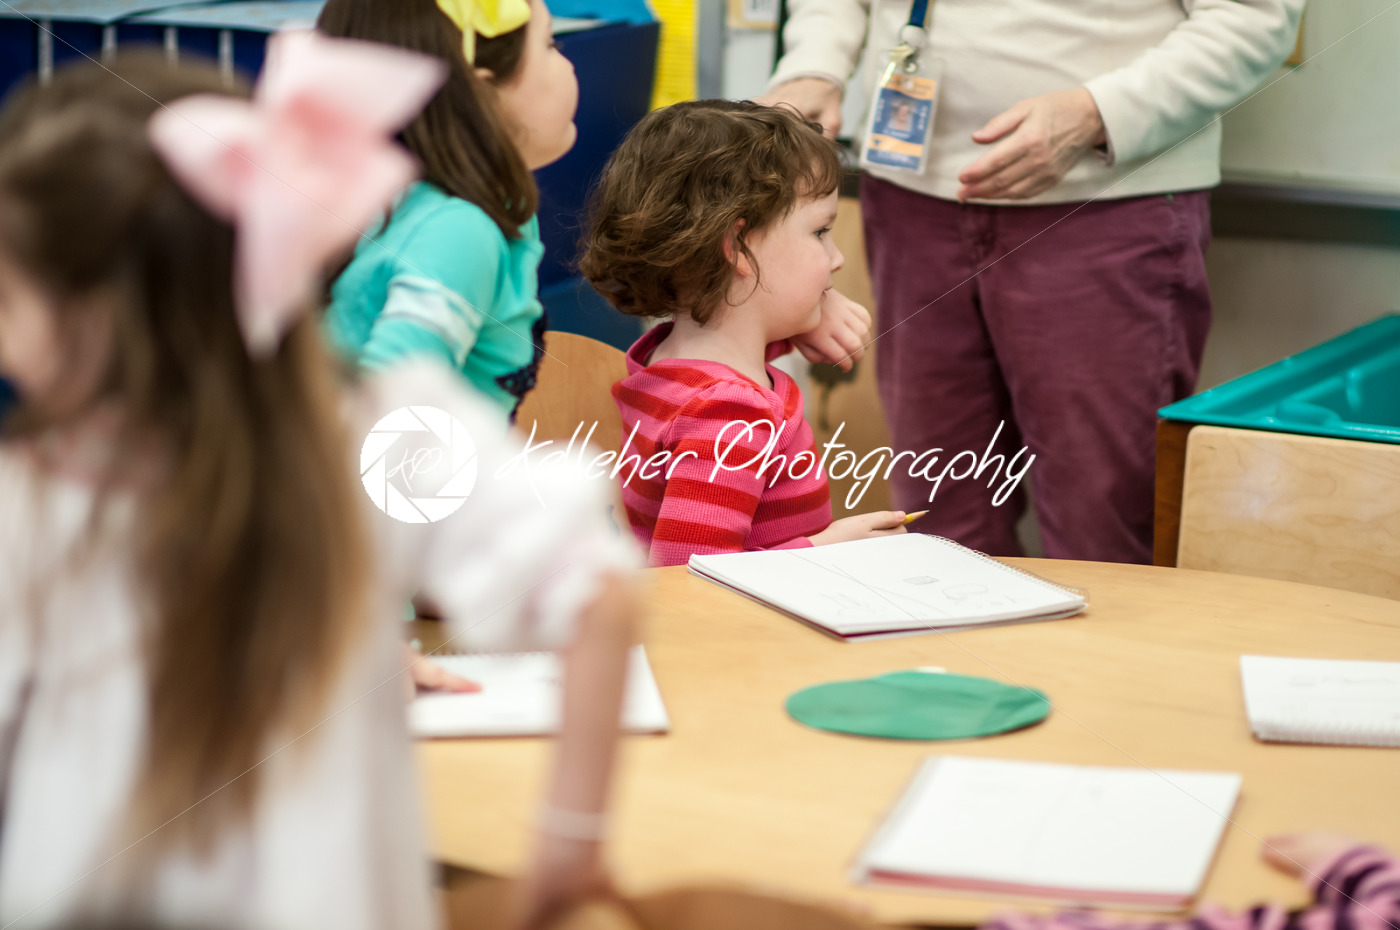 ROSEMONT, PA – MARCH 7: Agnes Irwin Pre-Kindergarten Assembly on March 7, 2014 - Kelleher Photography Store